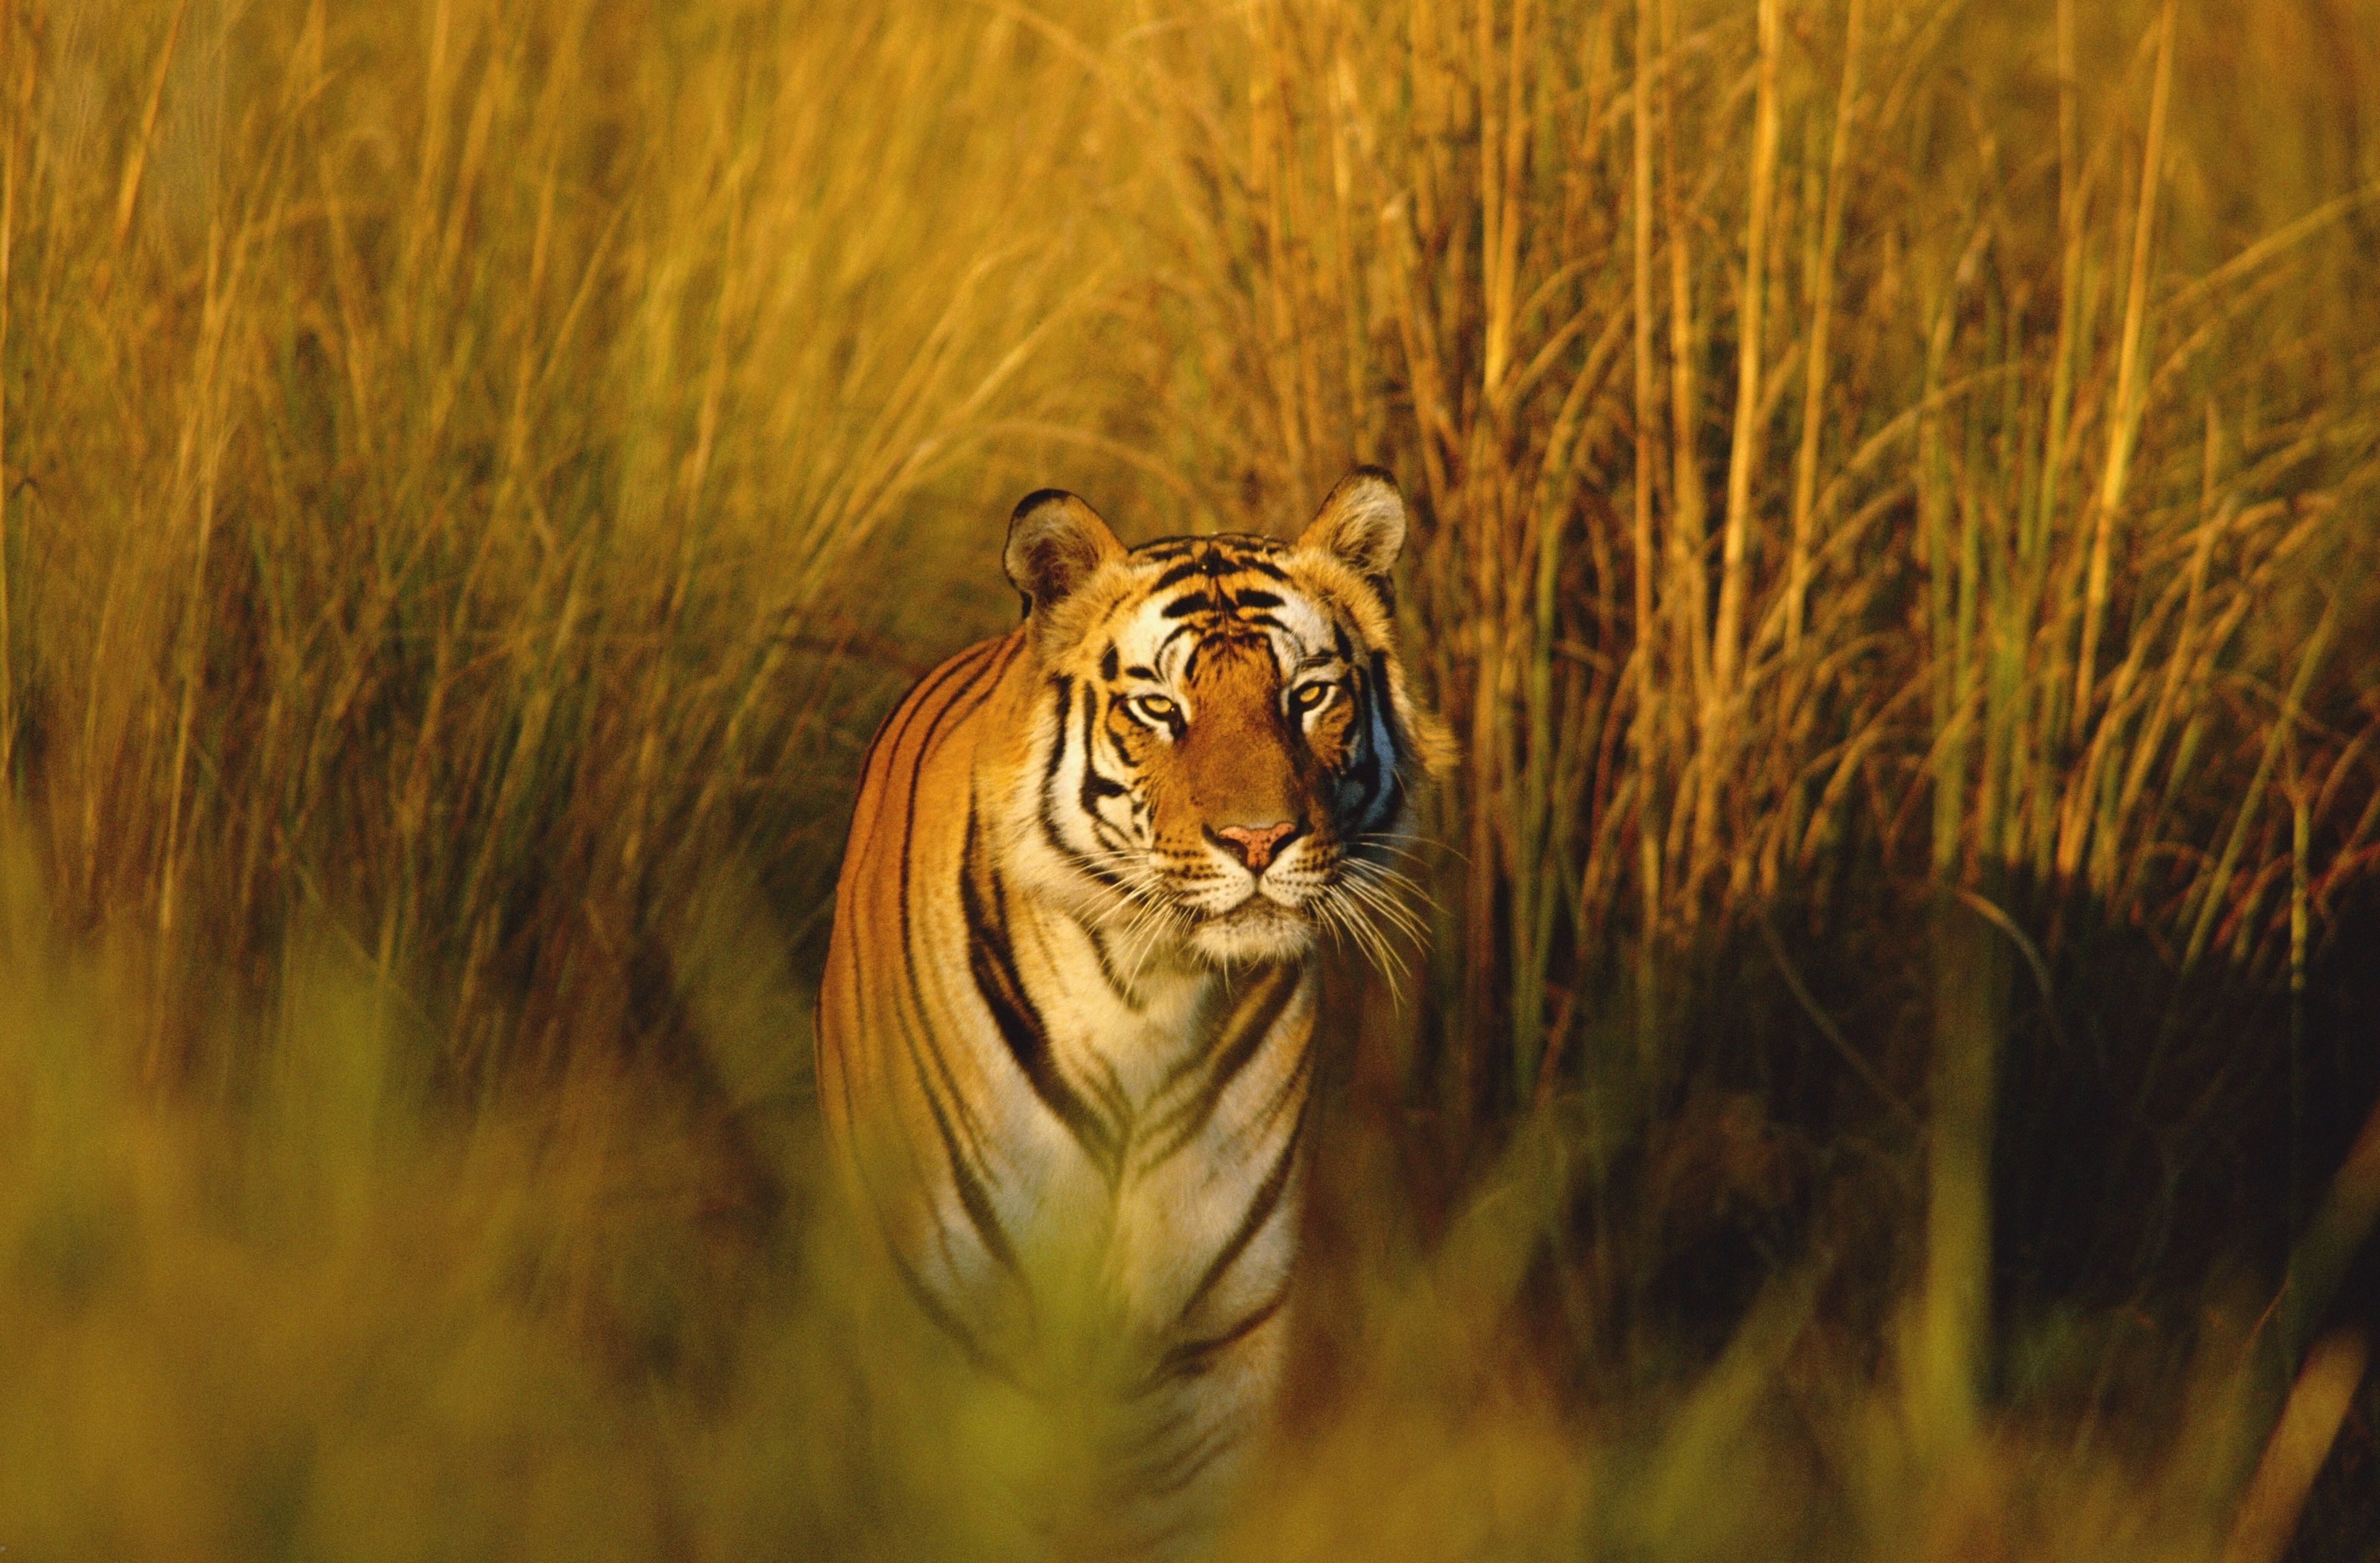 3840x2522 bengal tiger 4k wallpapers hd high resolution | wallpapers